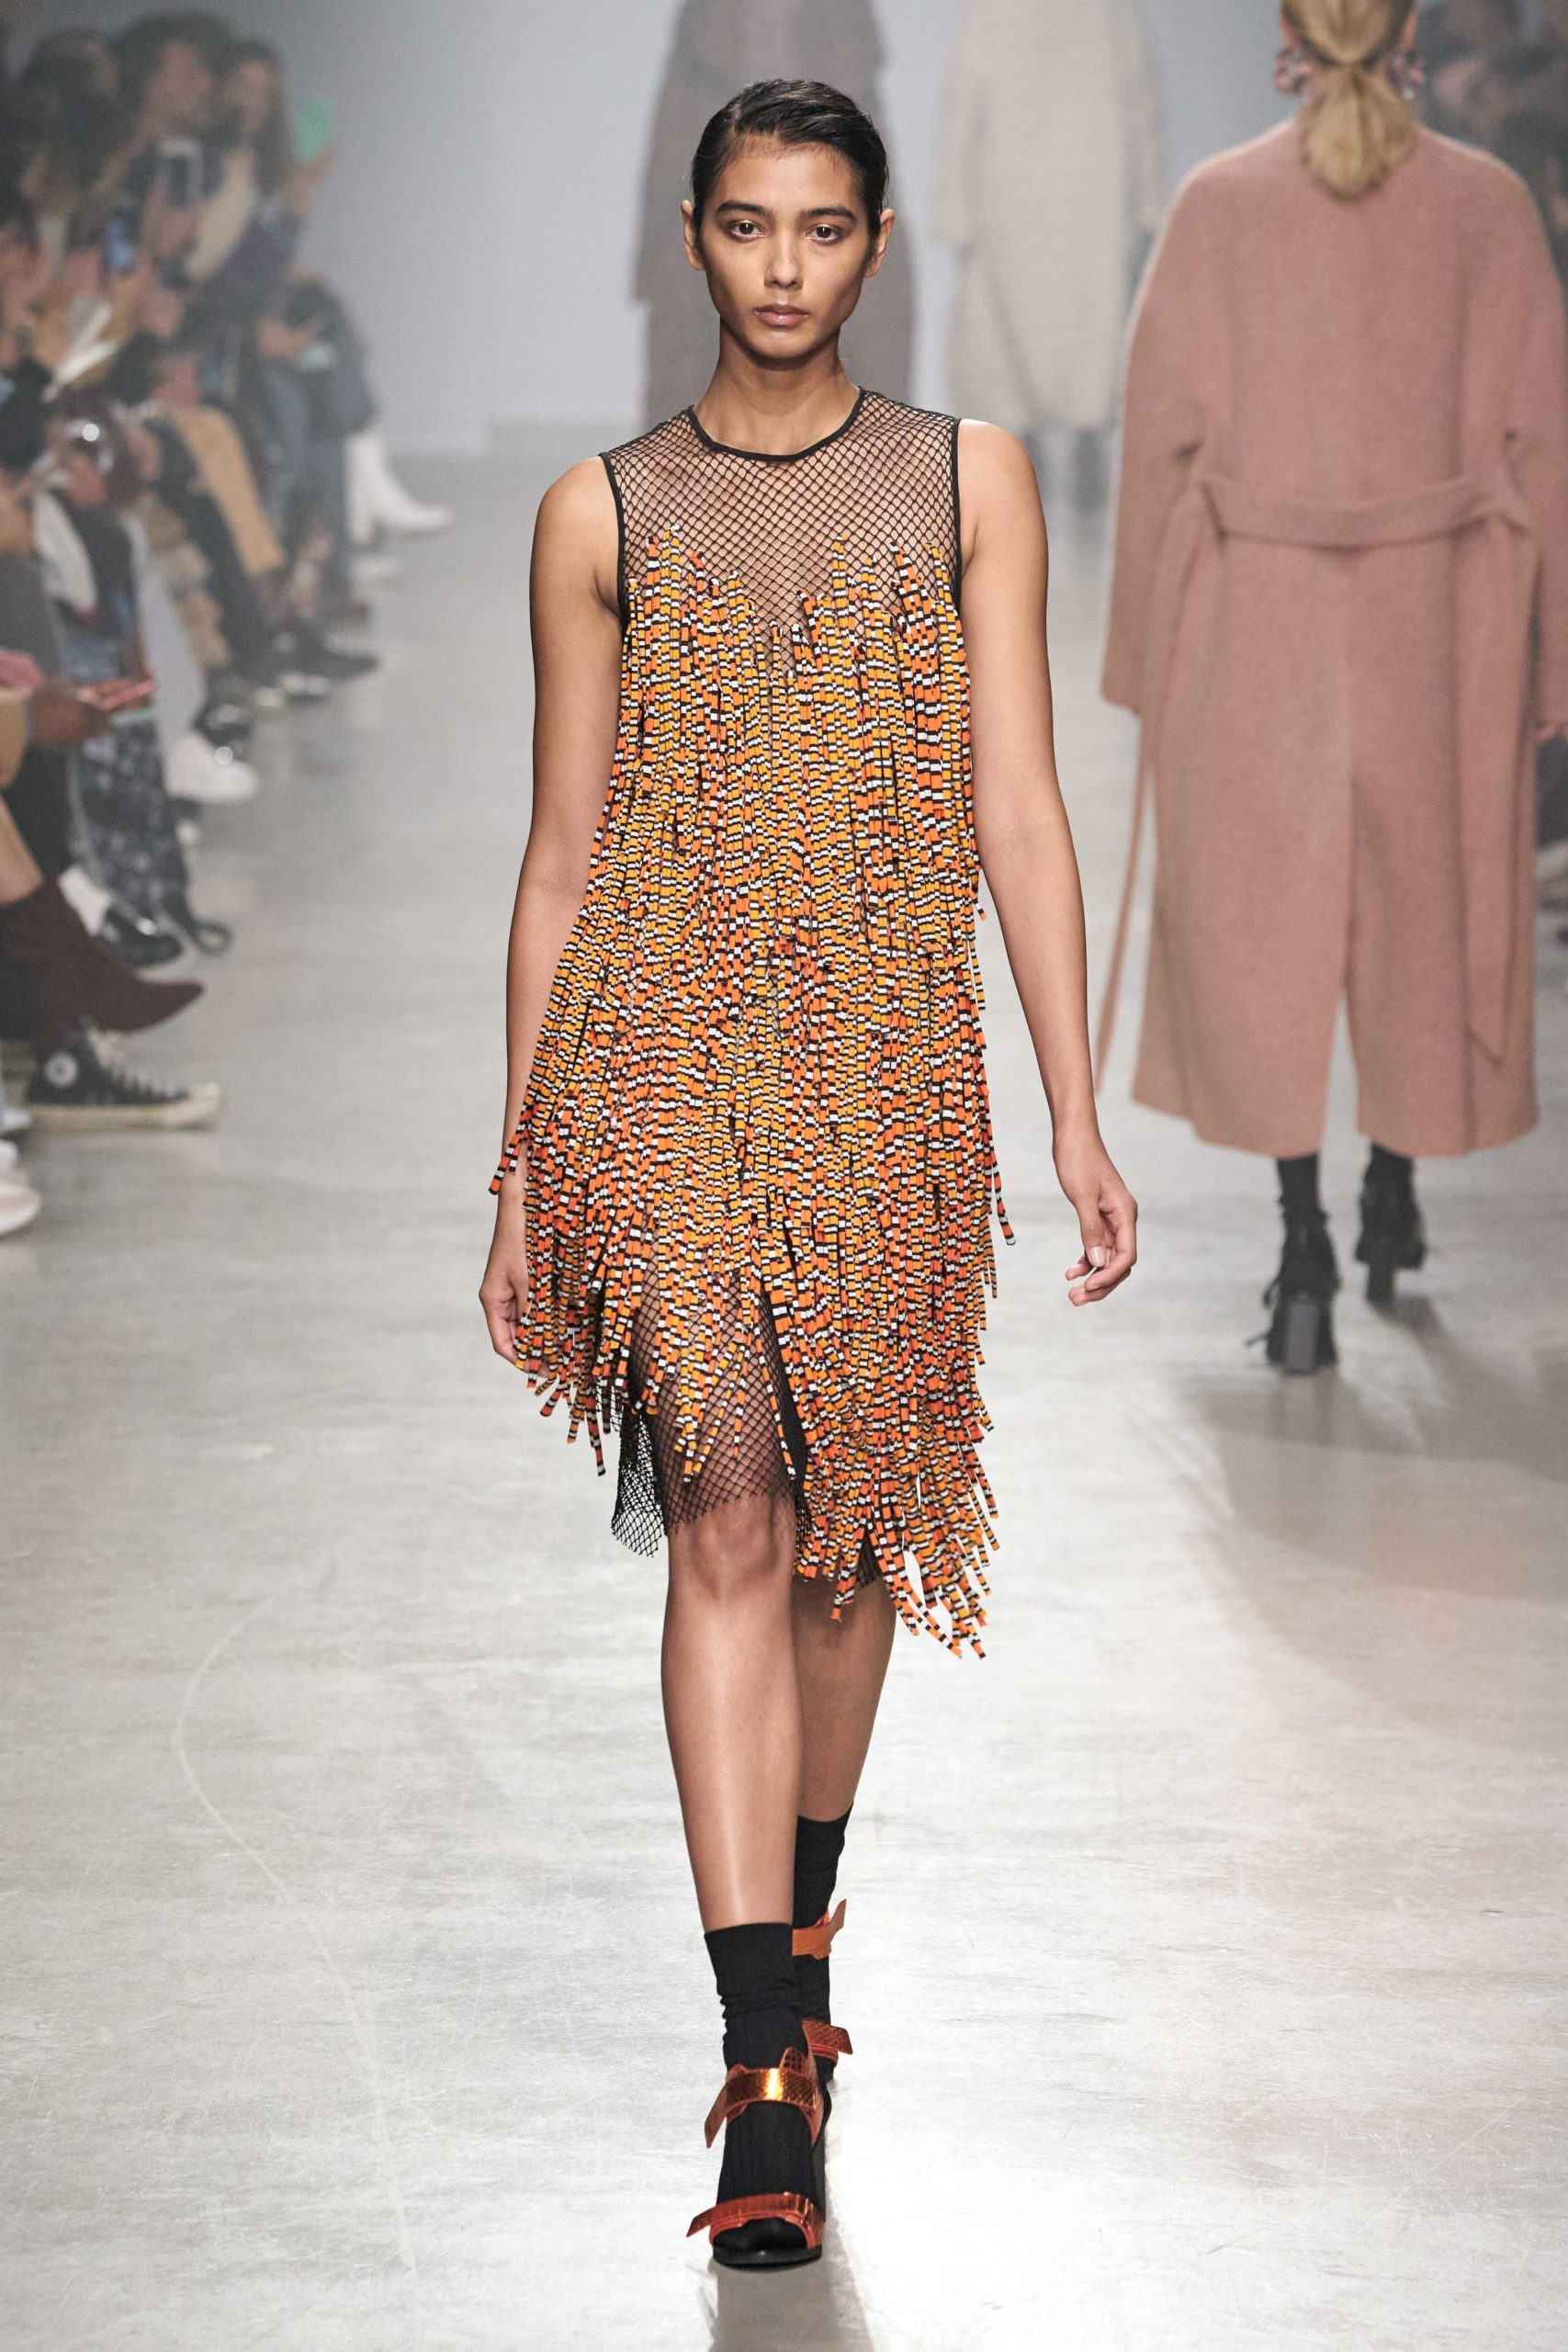 Christian Wijnants Fall Winter 2020 trends runway coverage Ready To Wear Vogue fringe